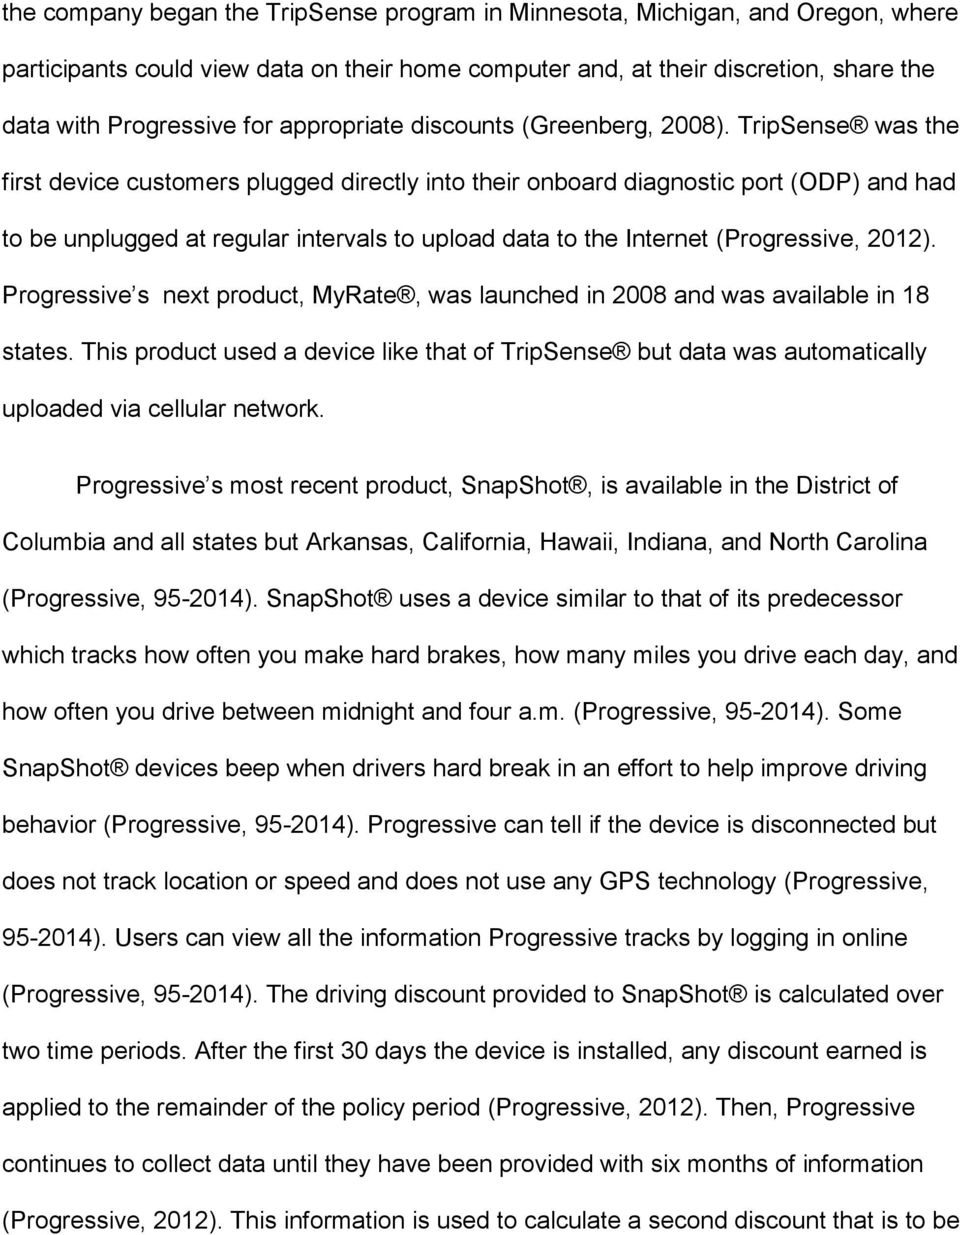 TripSense was the first device customers plugged directly into their onboard diagnostic port (ODP) and had to be unplugged at regular intervals to upload data to the Internet (Progressive, 2012).